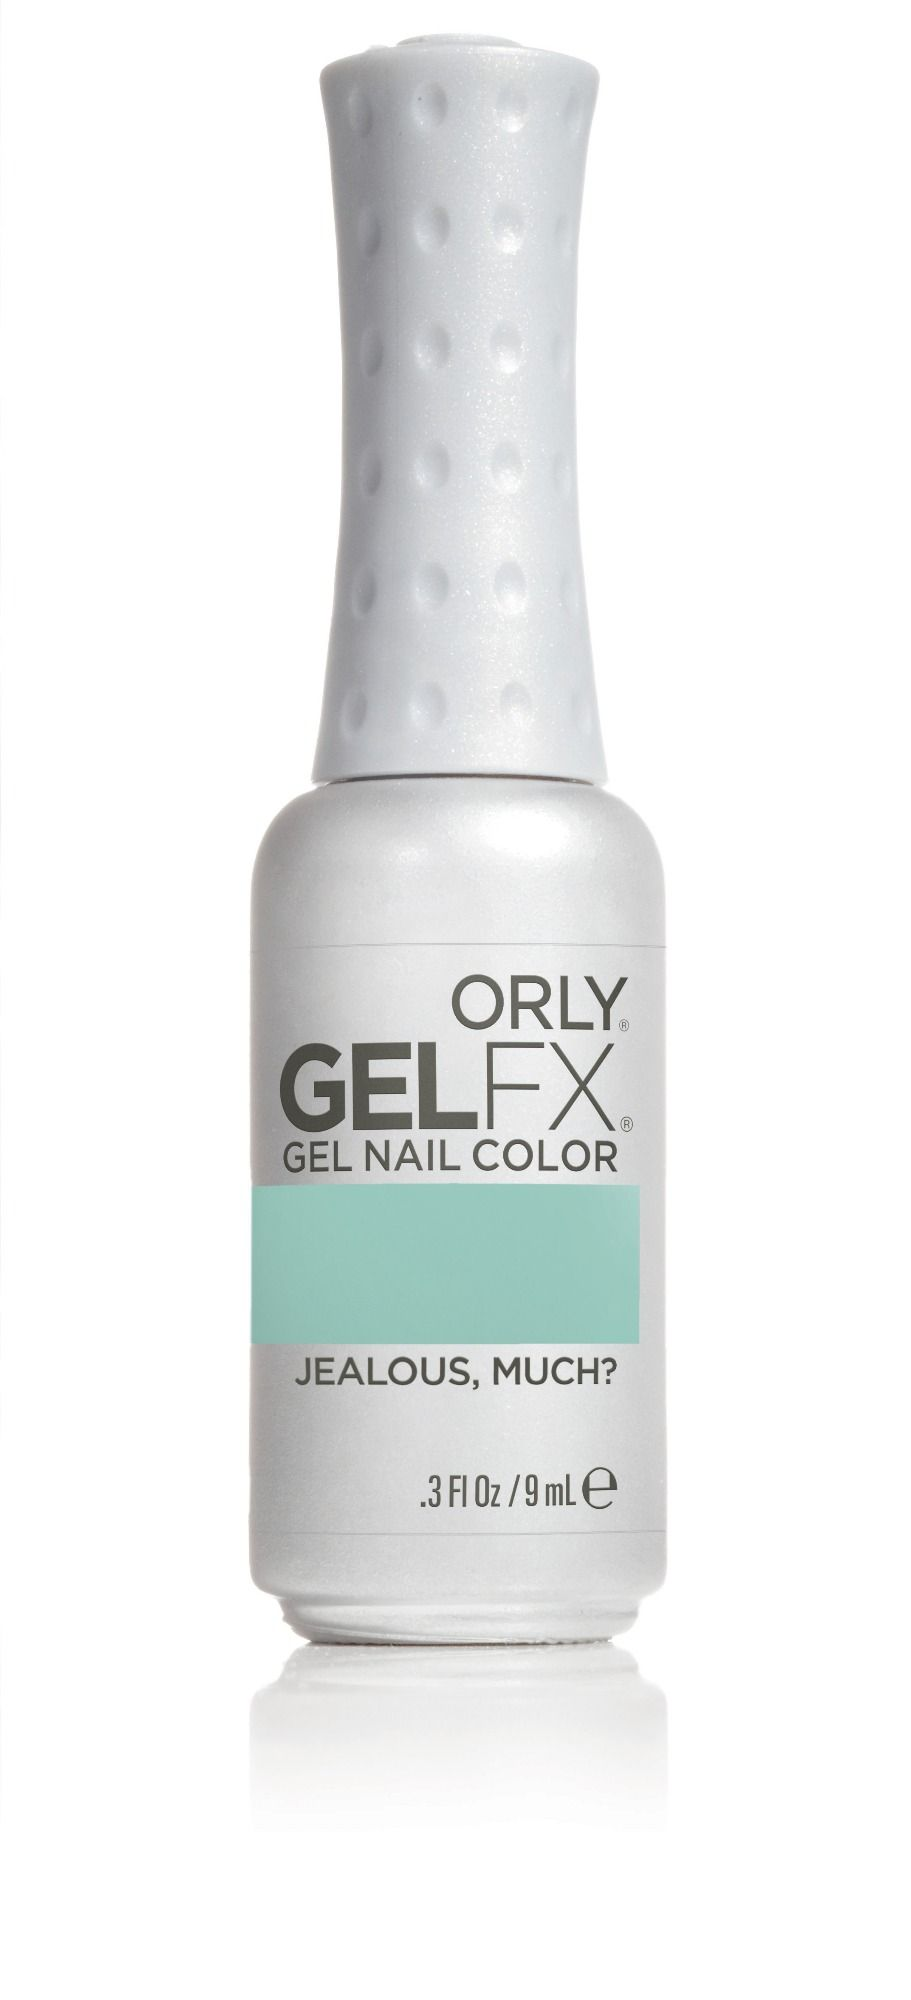 Orly GelFX Jealous, Much ? 9ml